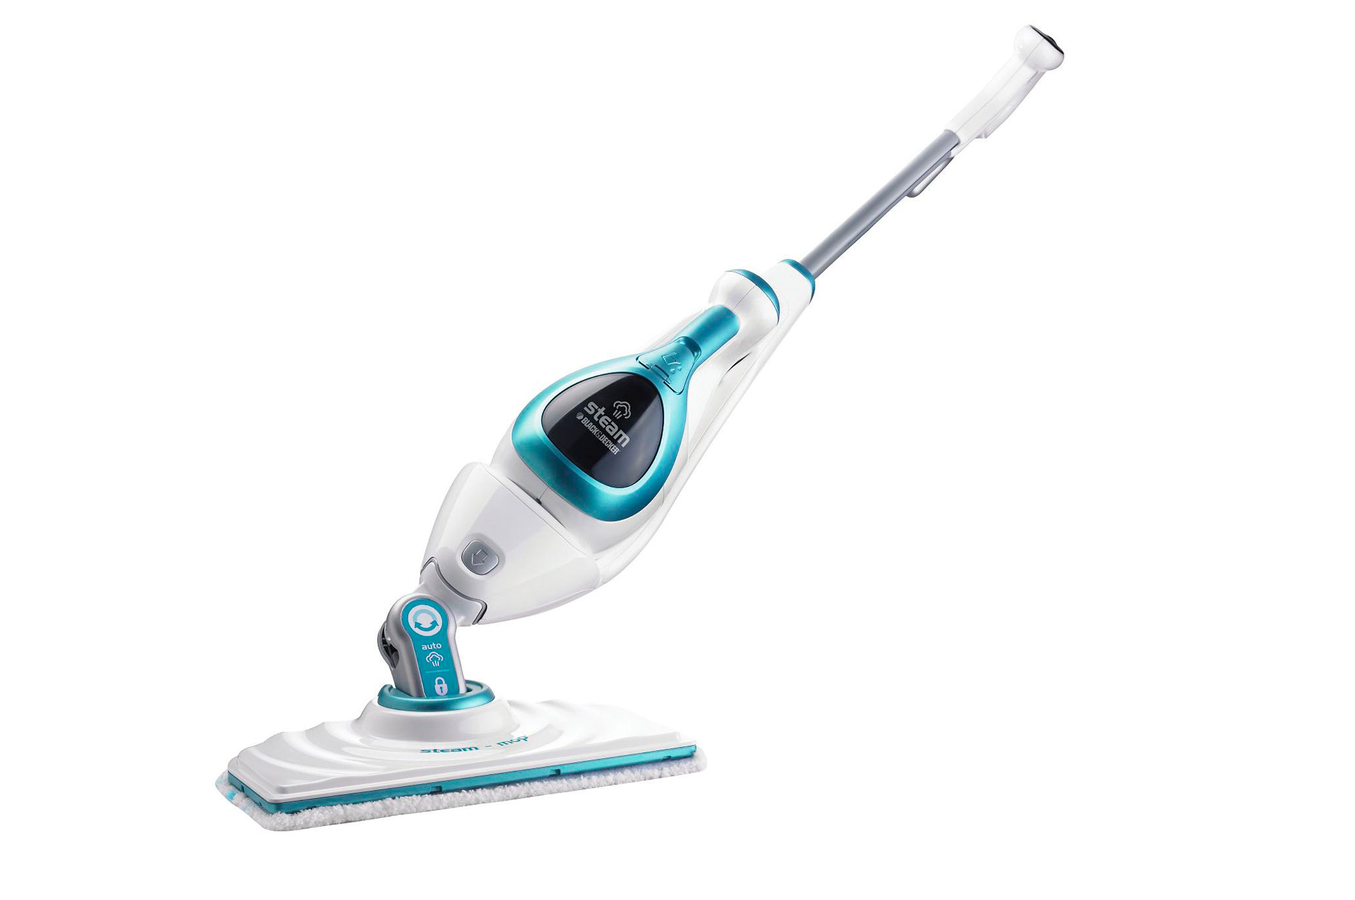 nettoyeur vapeur black decker fsmh1621 steam mop steammop 3721345 darty. Black Bedroom Furniture Sets. Home Design Ideas